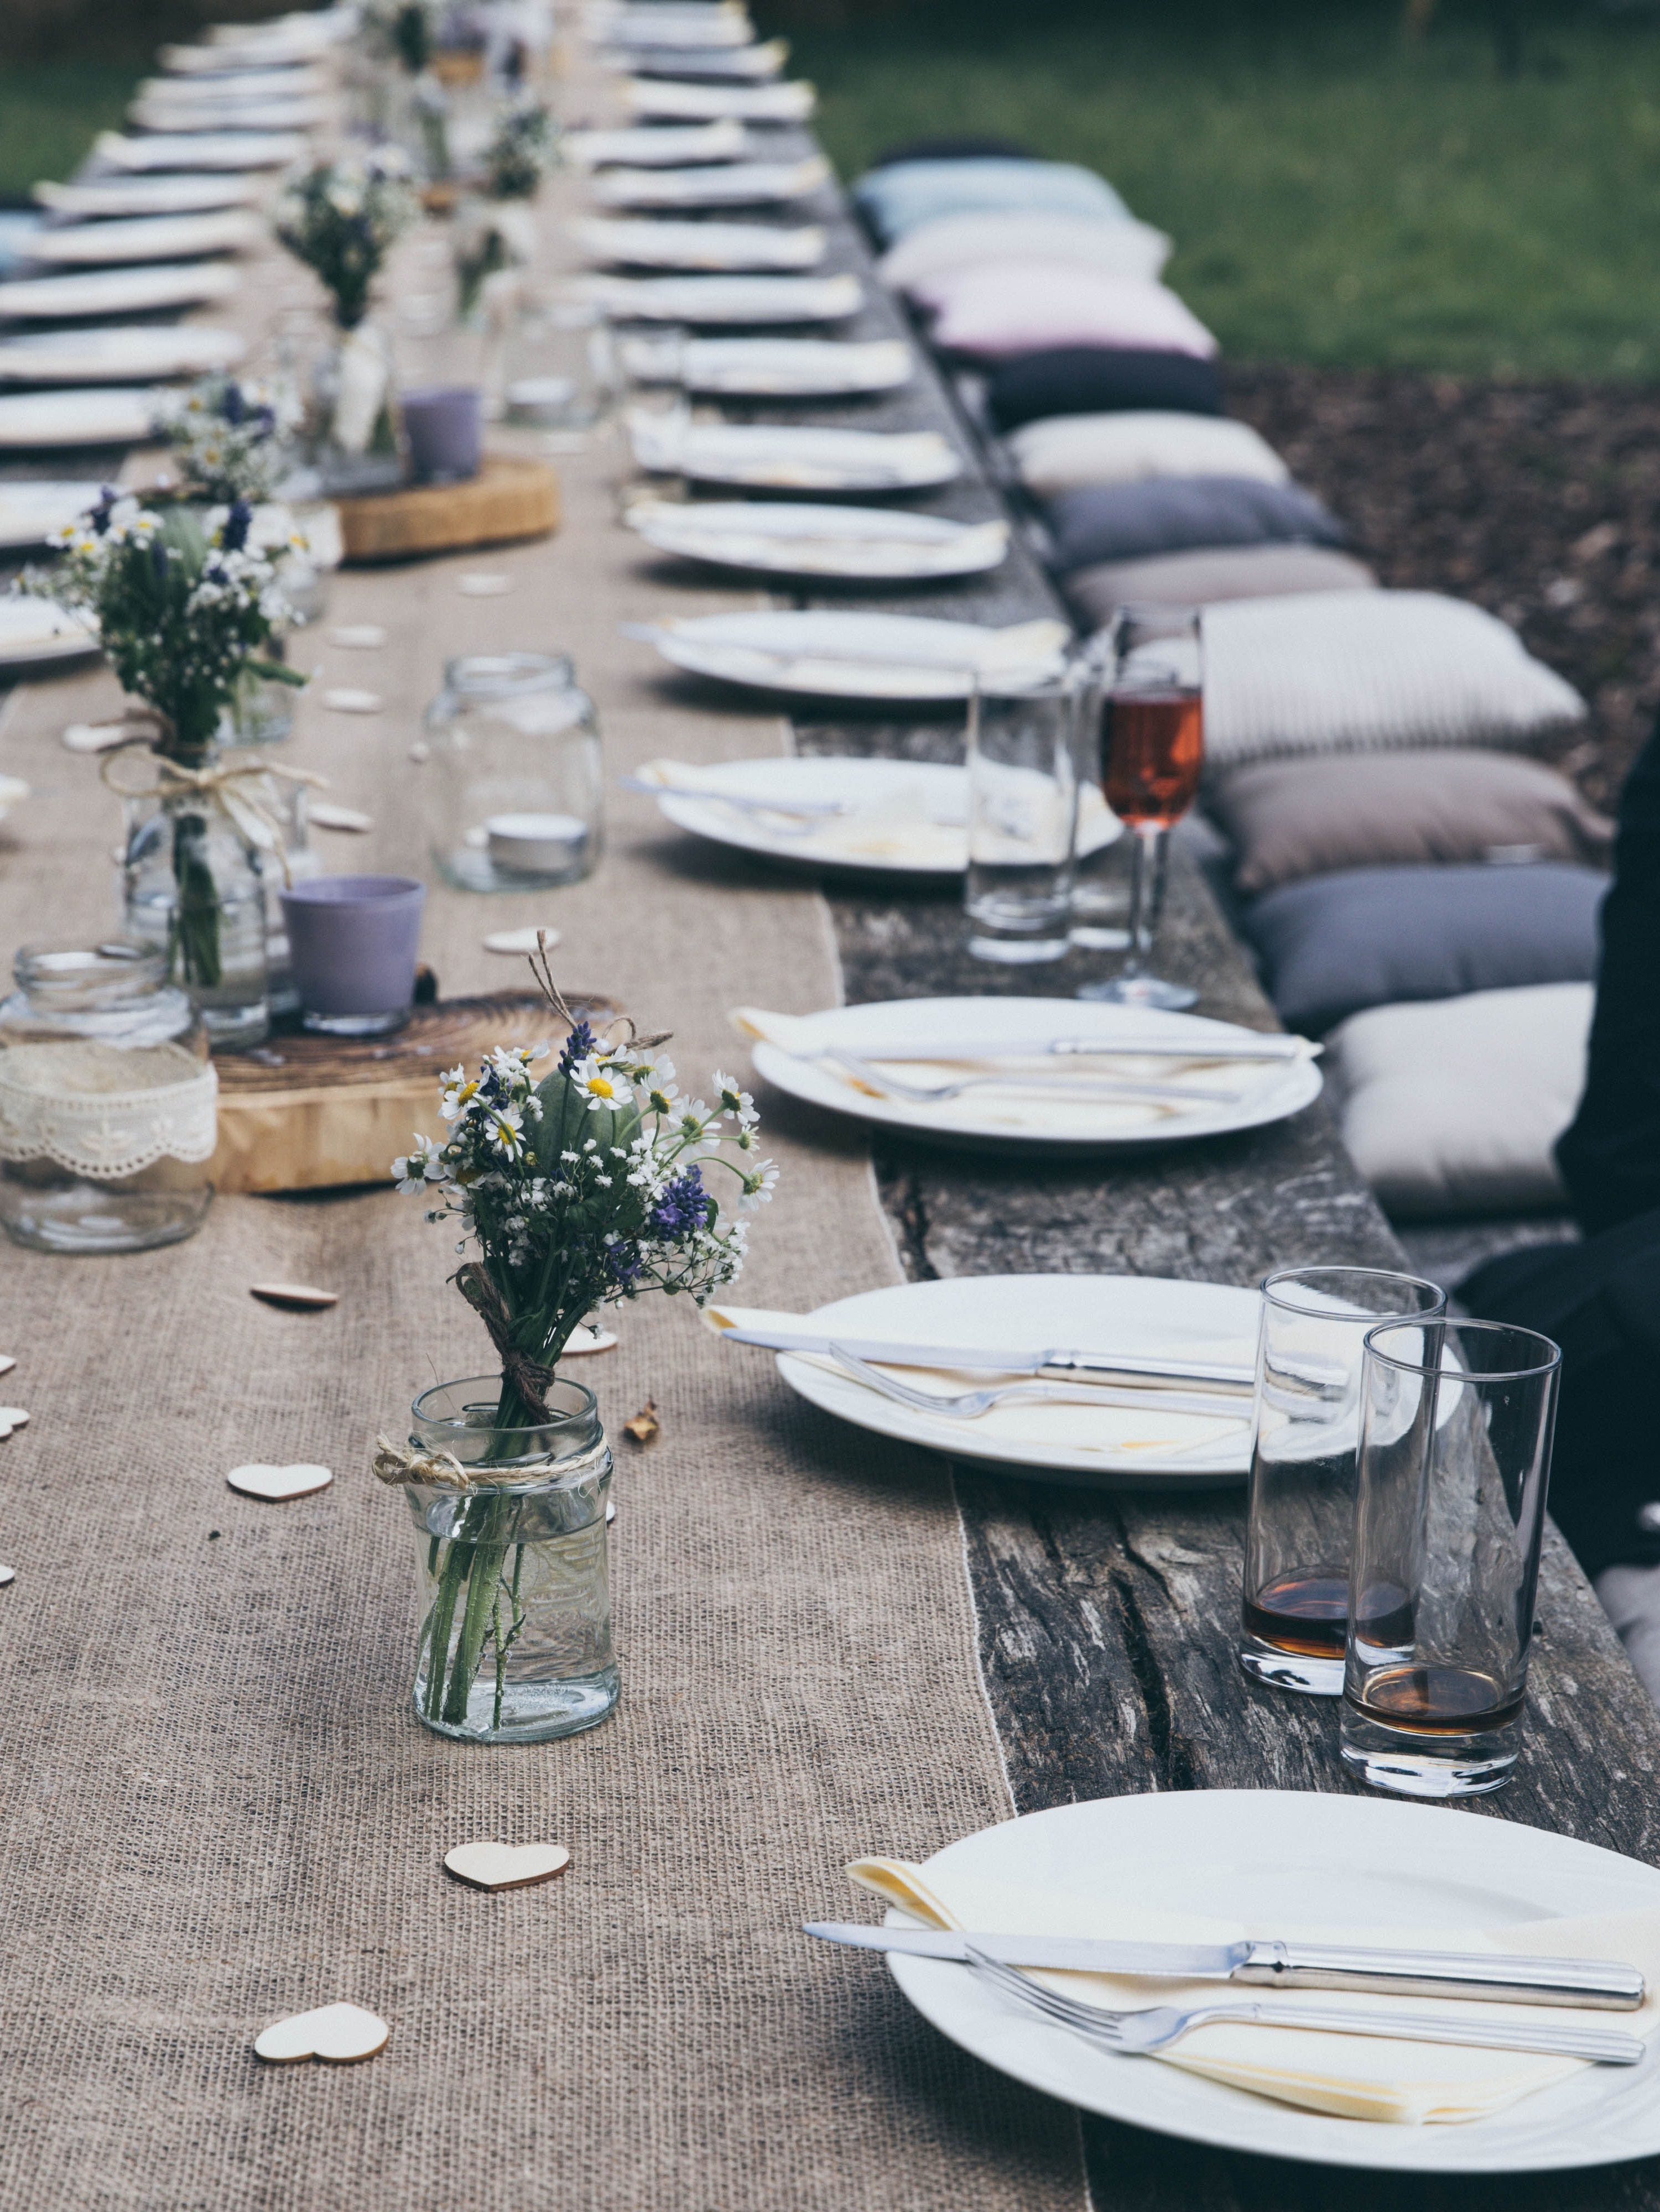 A very long table outdoors with centrepieces and place settings for dozens of people.